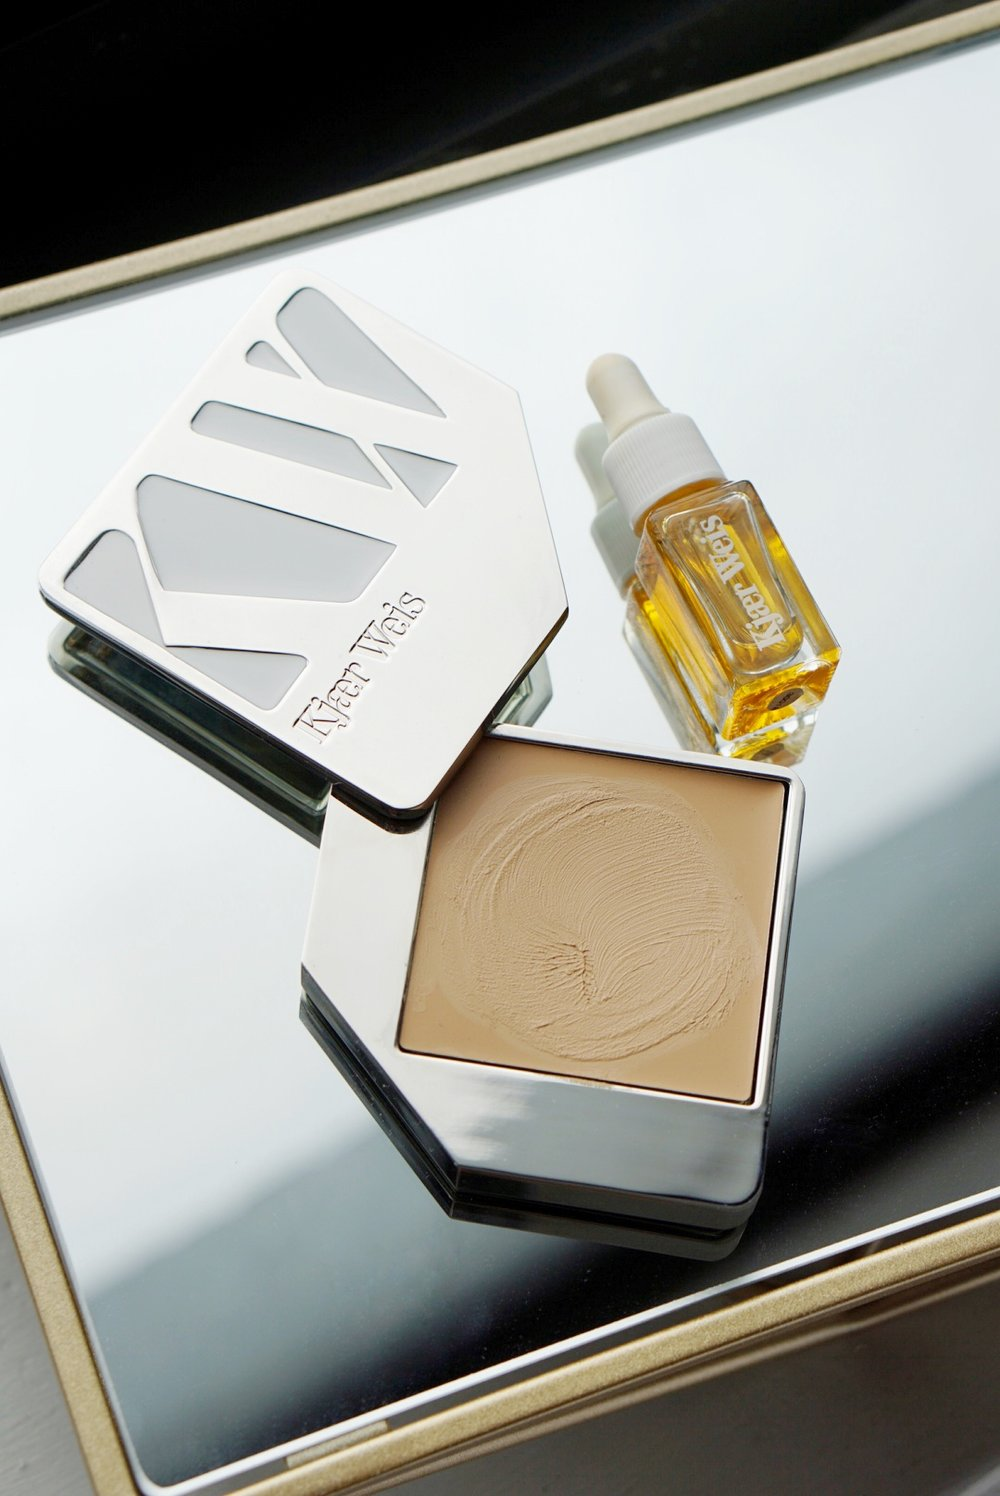 Kjaer Weis - This natural makeup brand is offering 20% off all orders with code KWBF18.Valid from November 23 to 26, Friday to Monday.